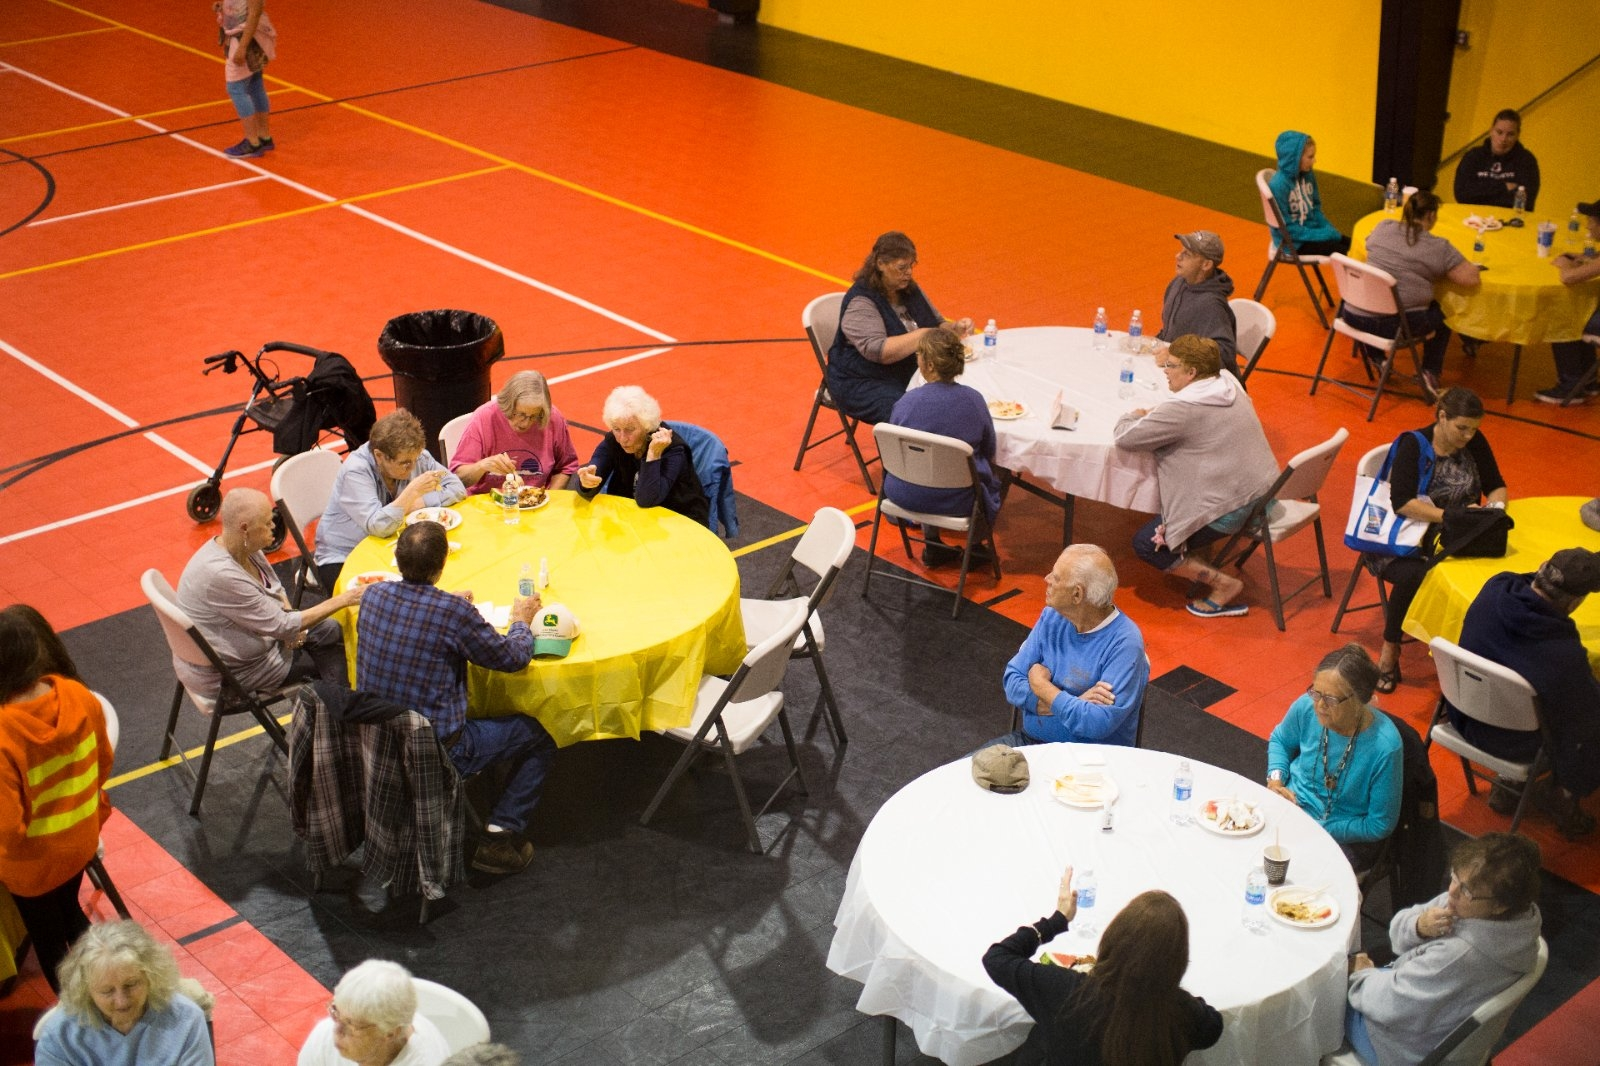 A community meal brings together a diverse group of people.